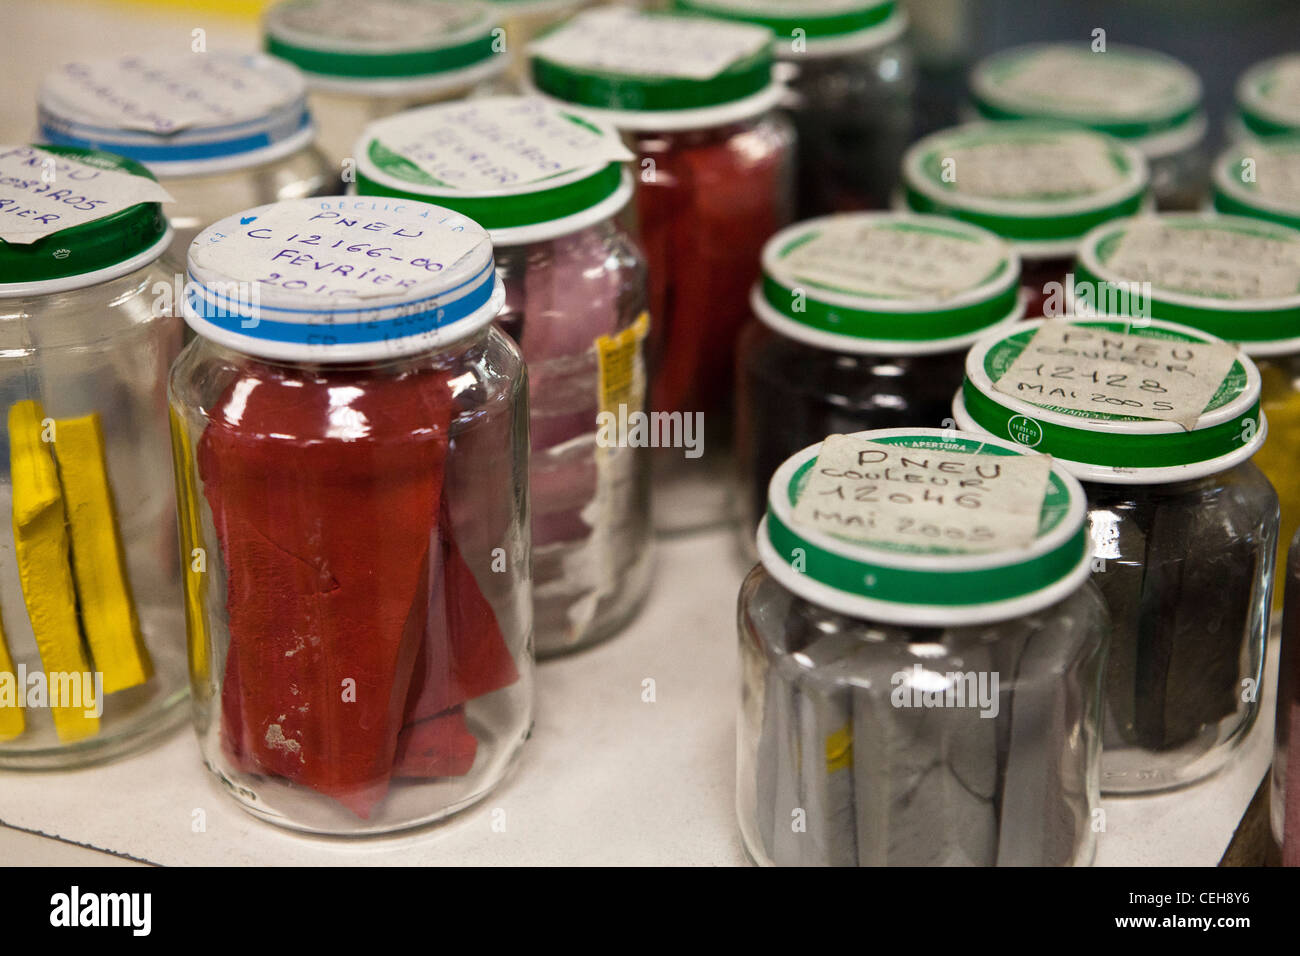 Assorted jars of colouring for tires at the Hutchinson tire factory - Stock Image